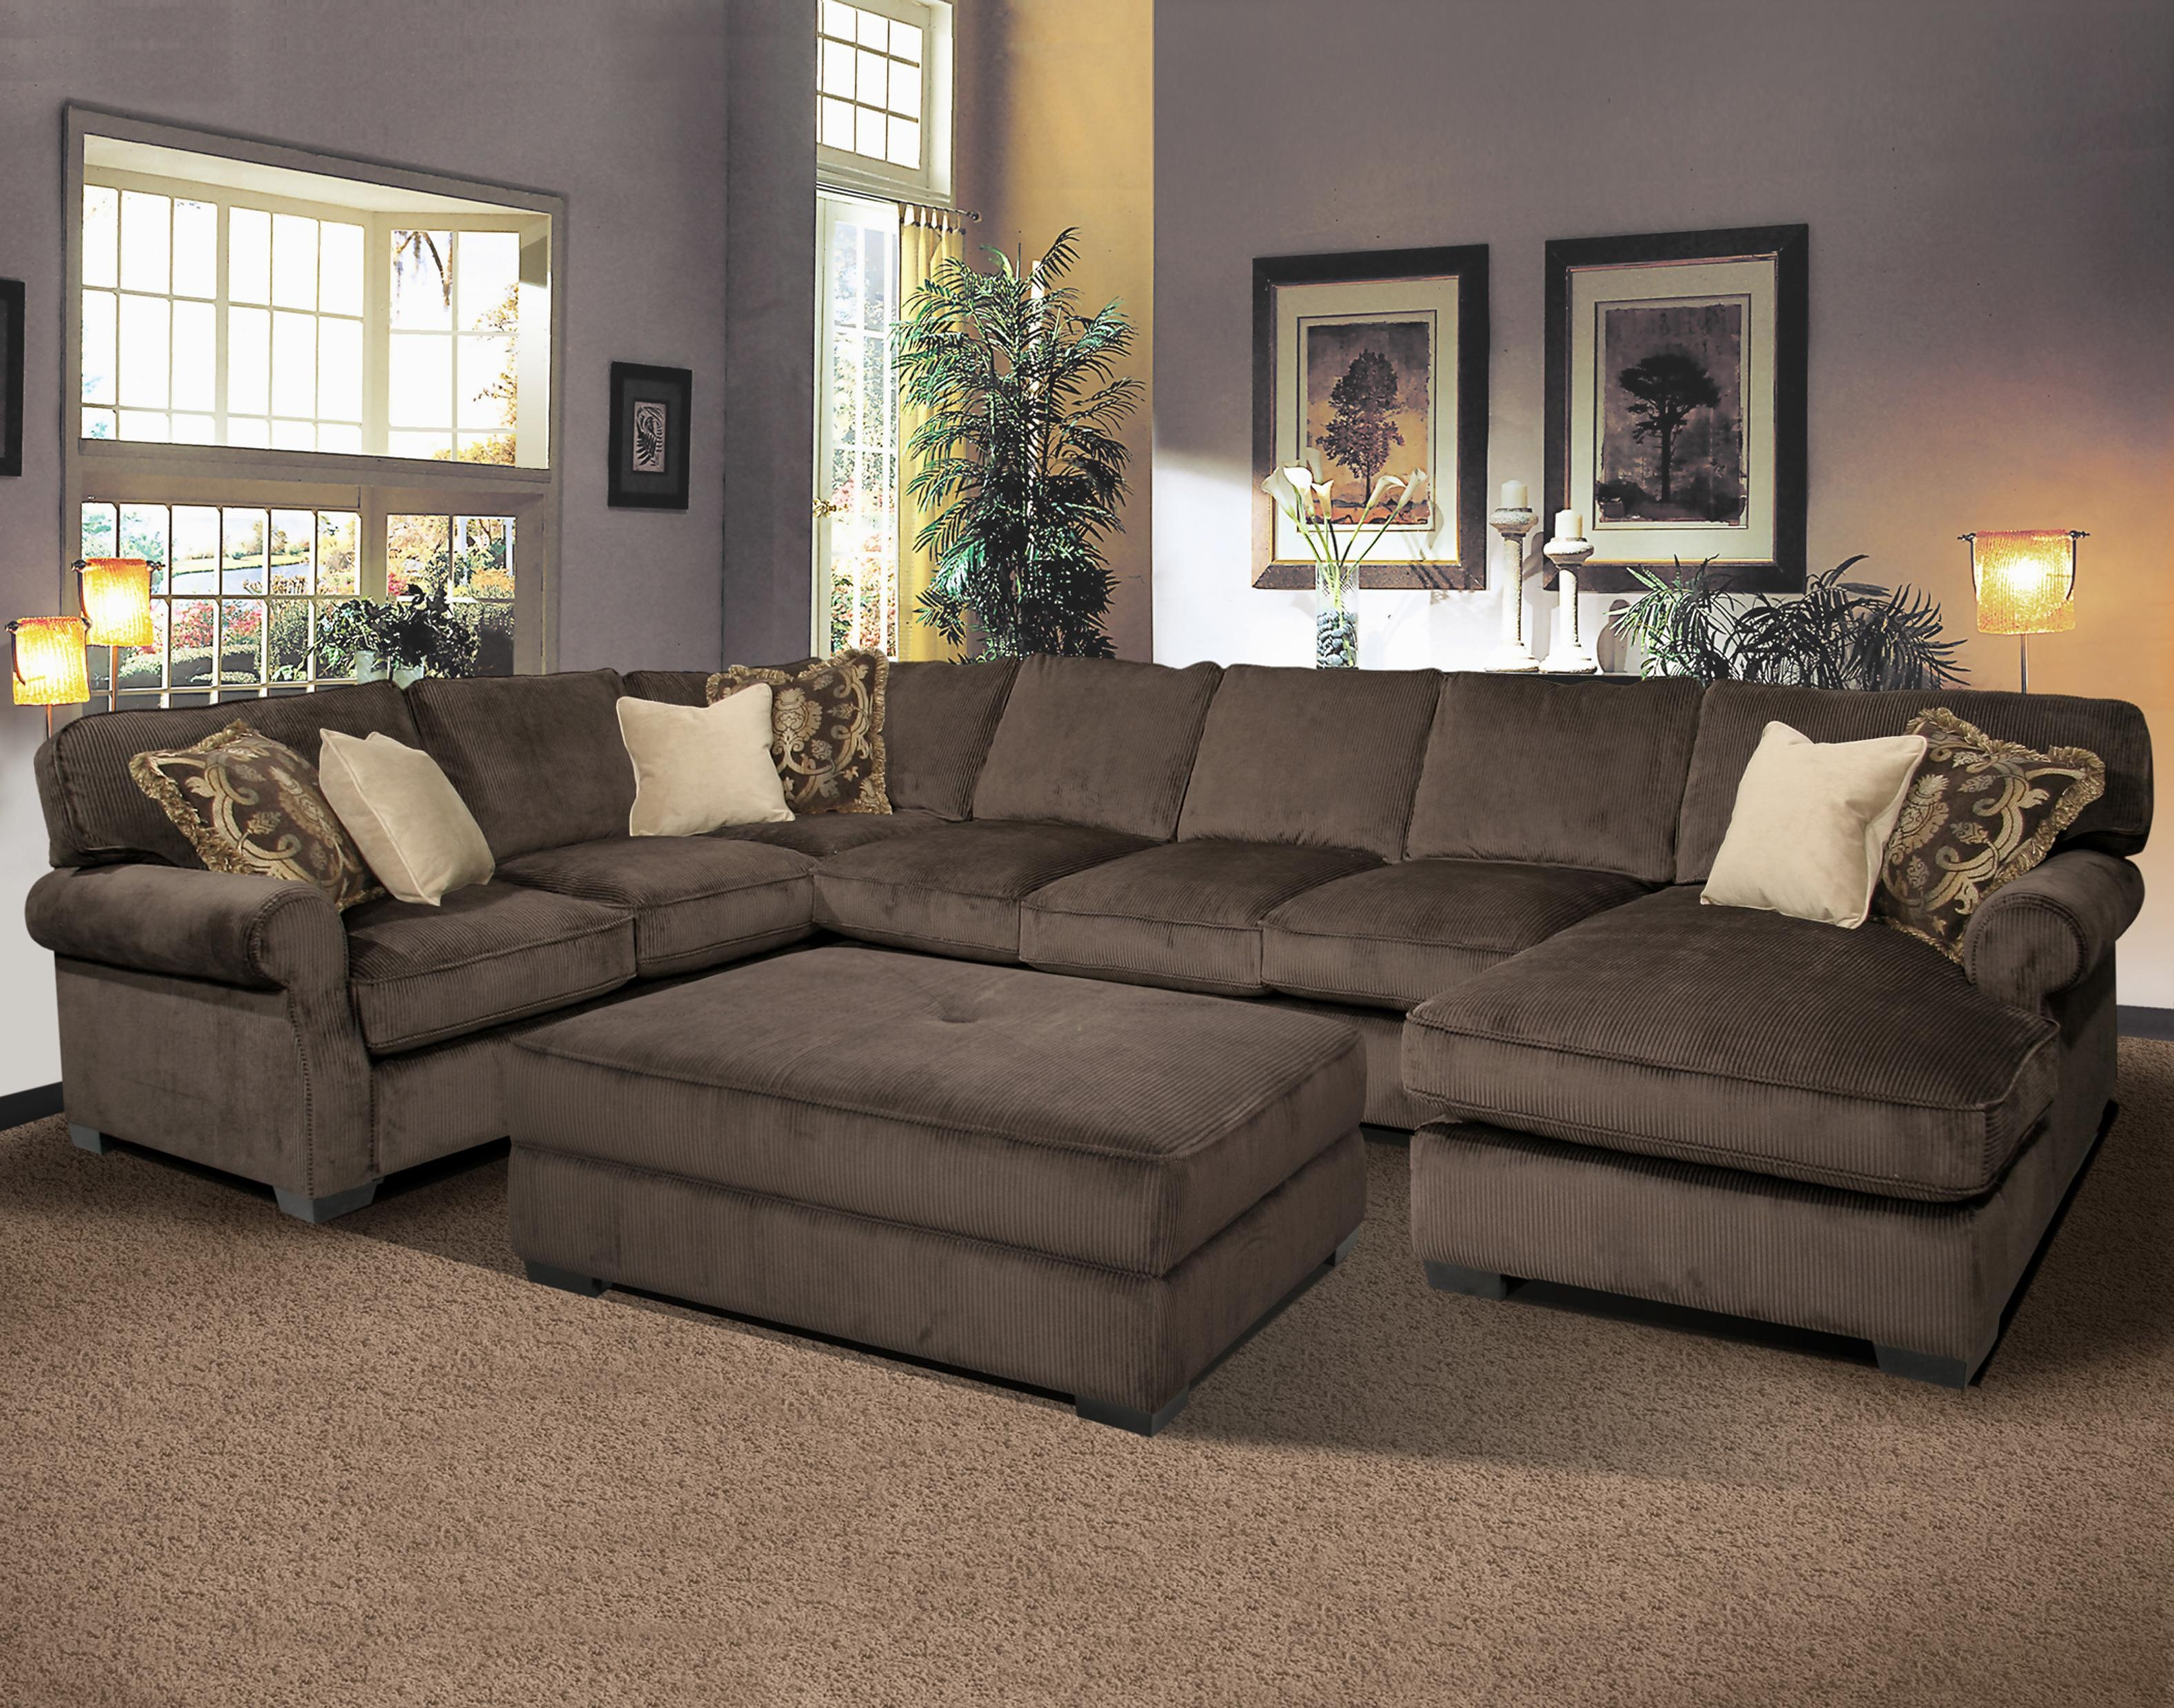 couch most size reversible with chaise of sofa comfortable microfiber modular oversized mini full living room sectional choosing best sofas suede comforter the grey